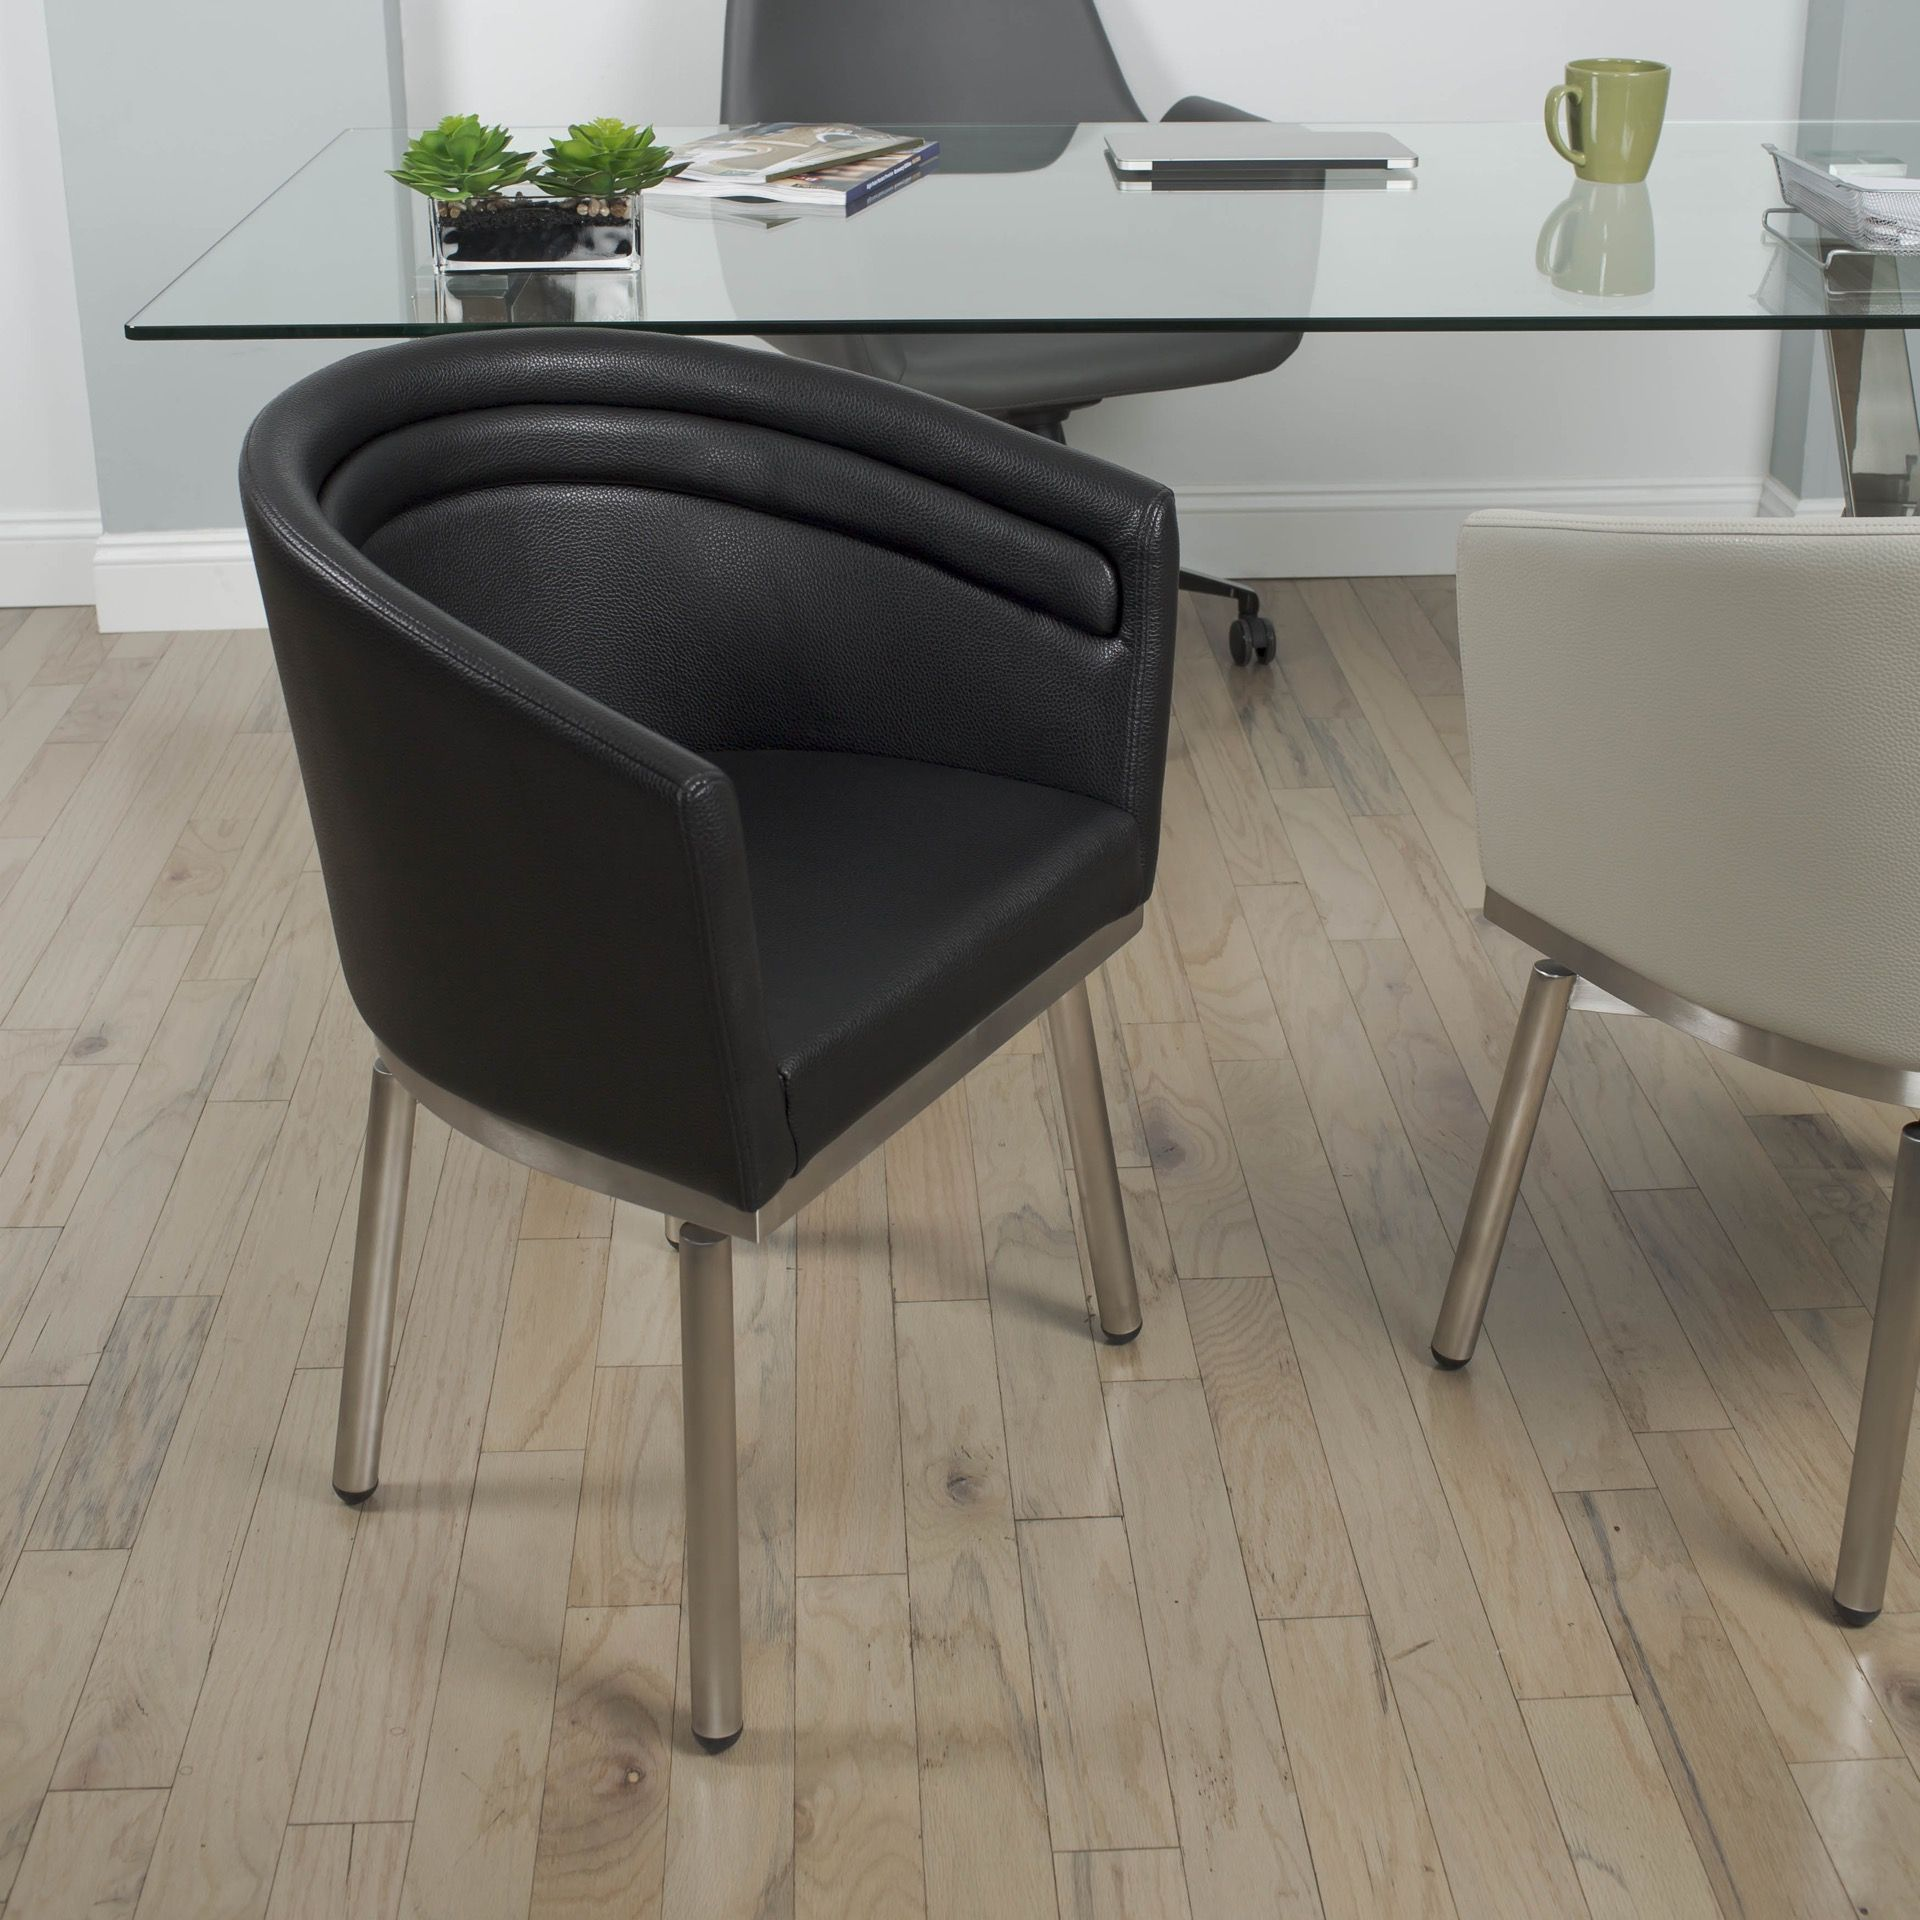 The Contemporary Elegance Of The Zamora Collection Features A